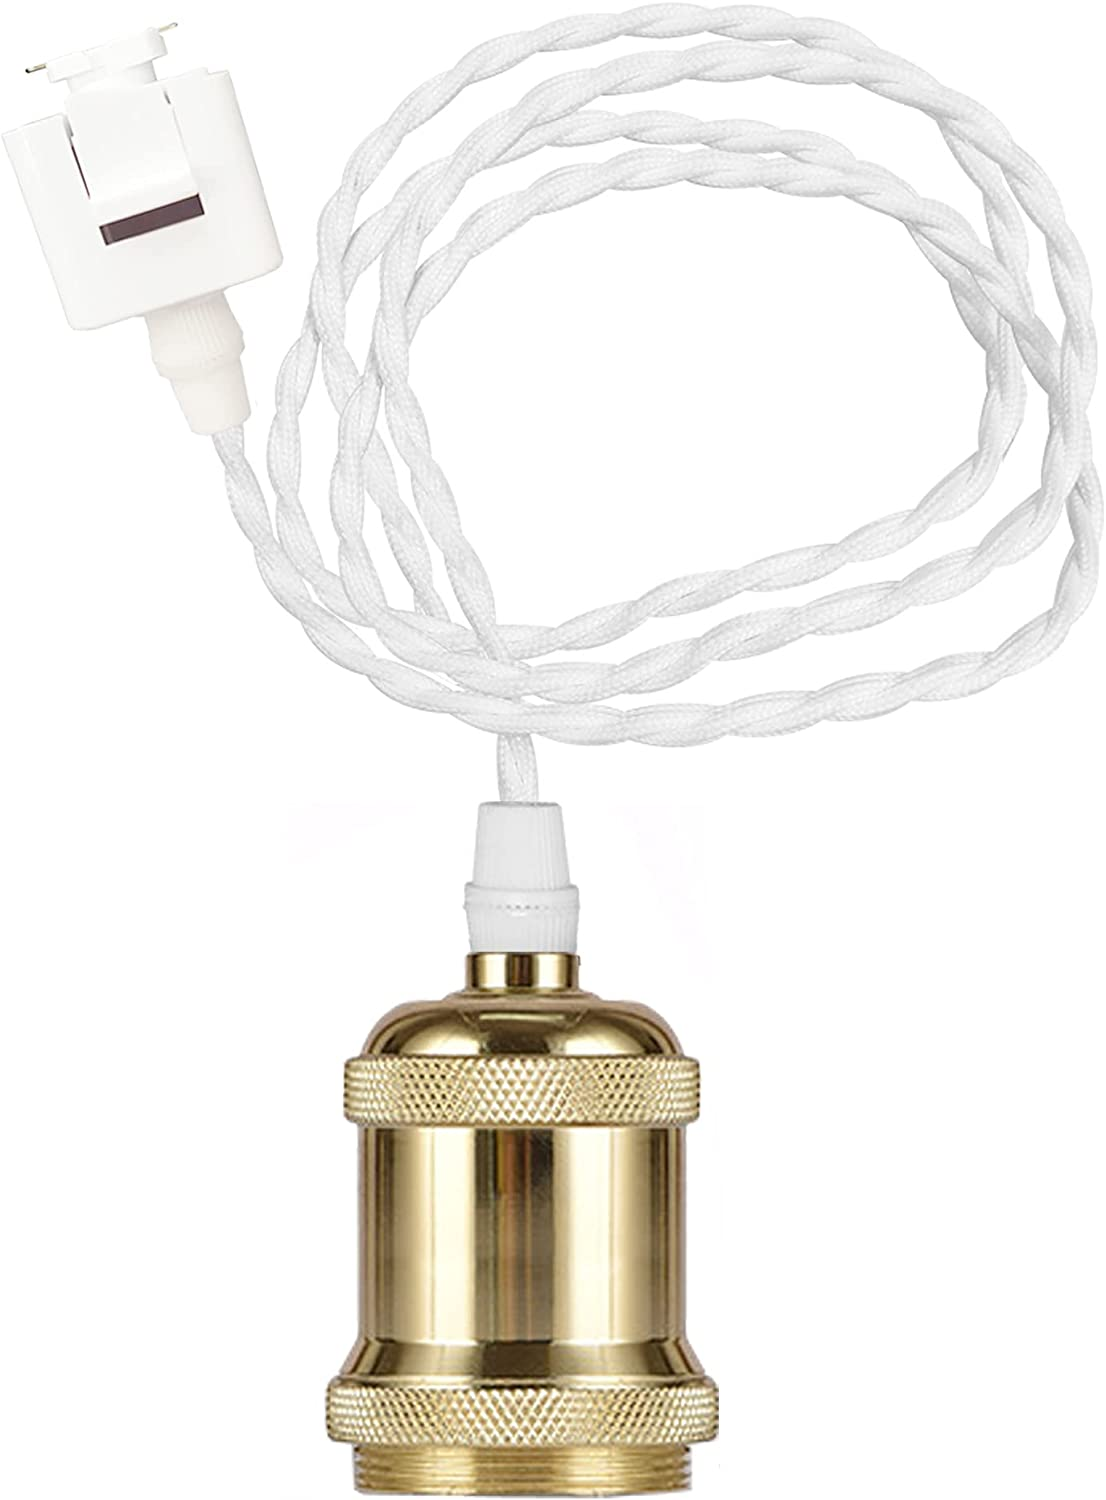 STGLIGHTING Max Superior 84% OFF J-Type Track Pendant Light Rope White Cord Gol Weave